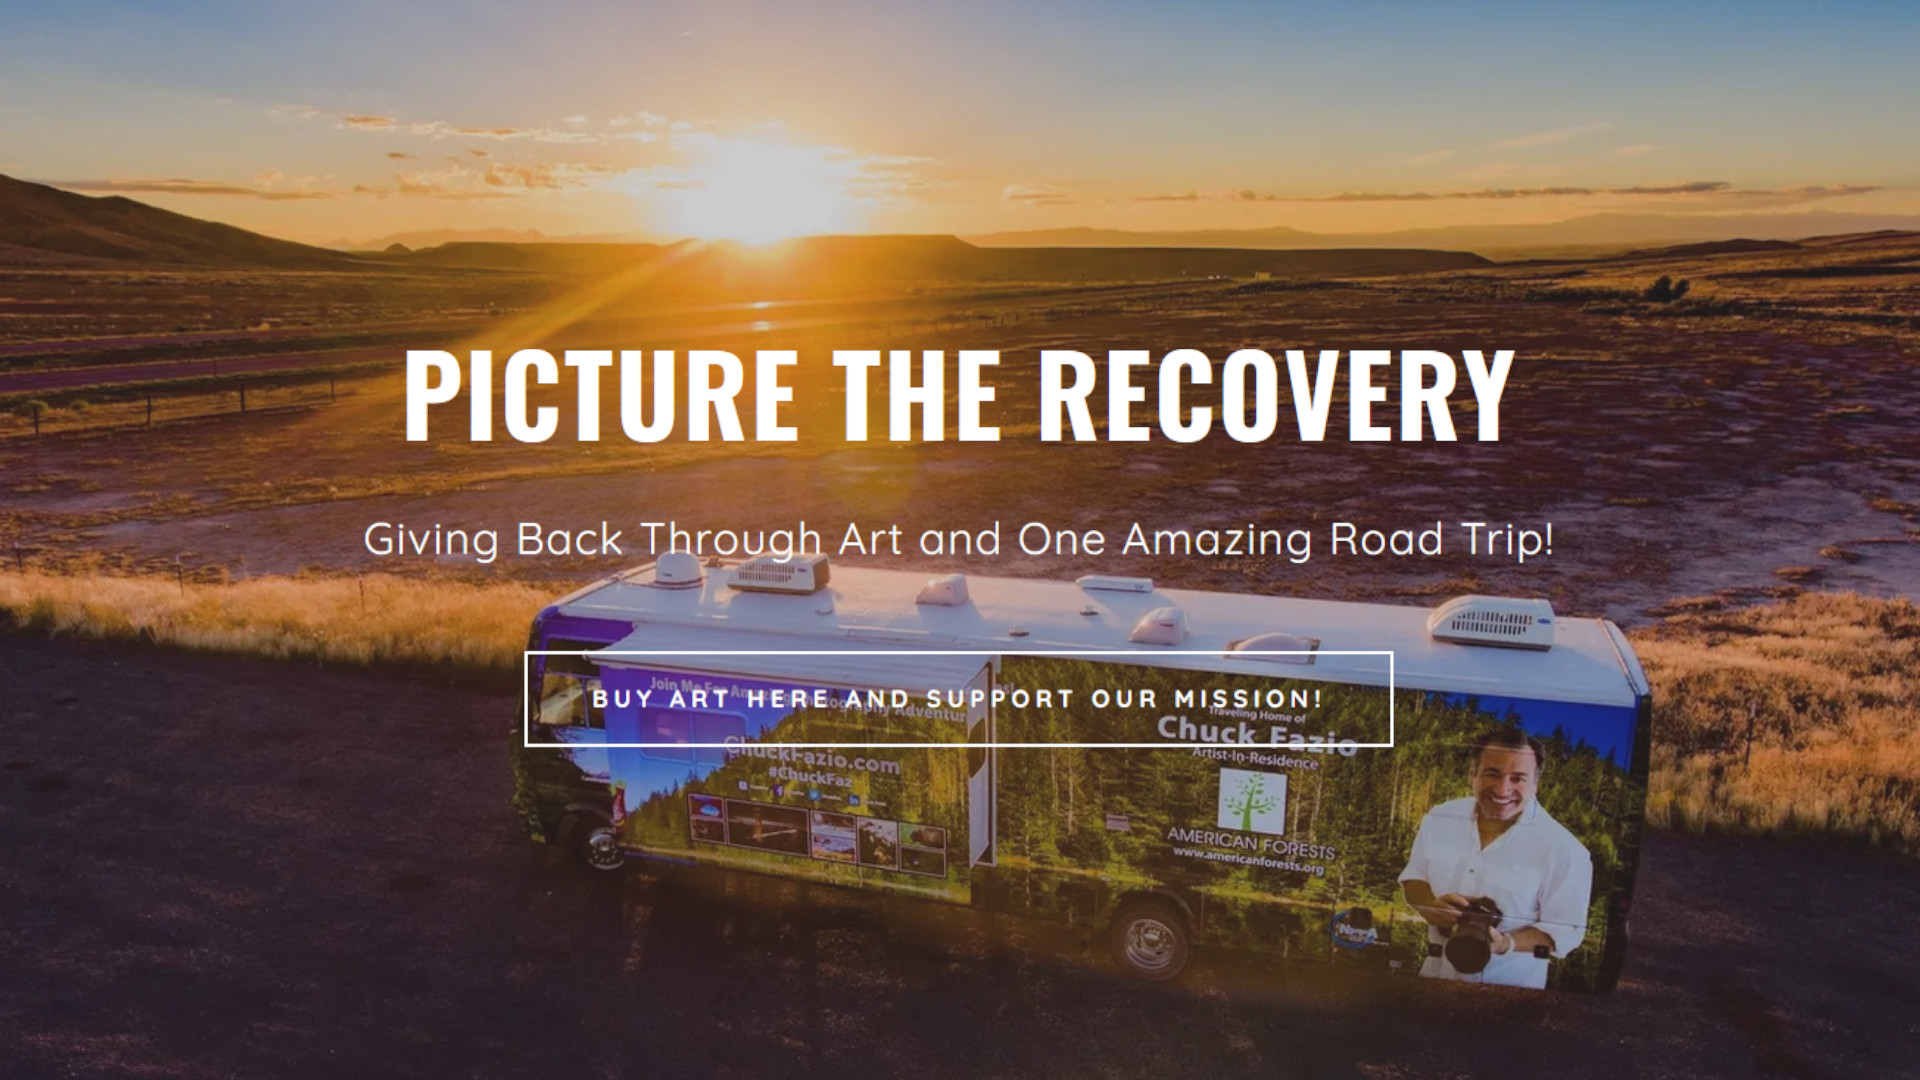 Picture The Recovery Campaign